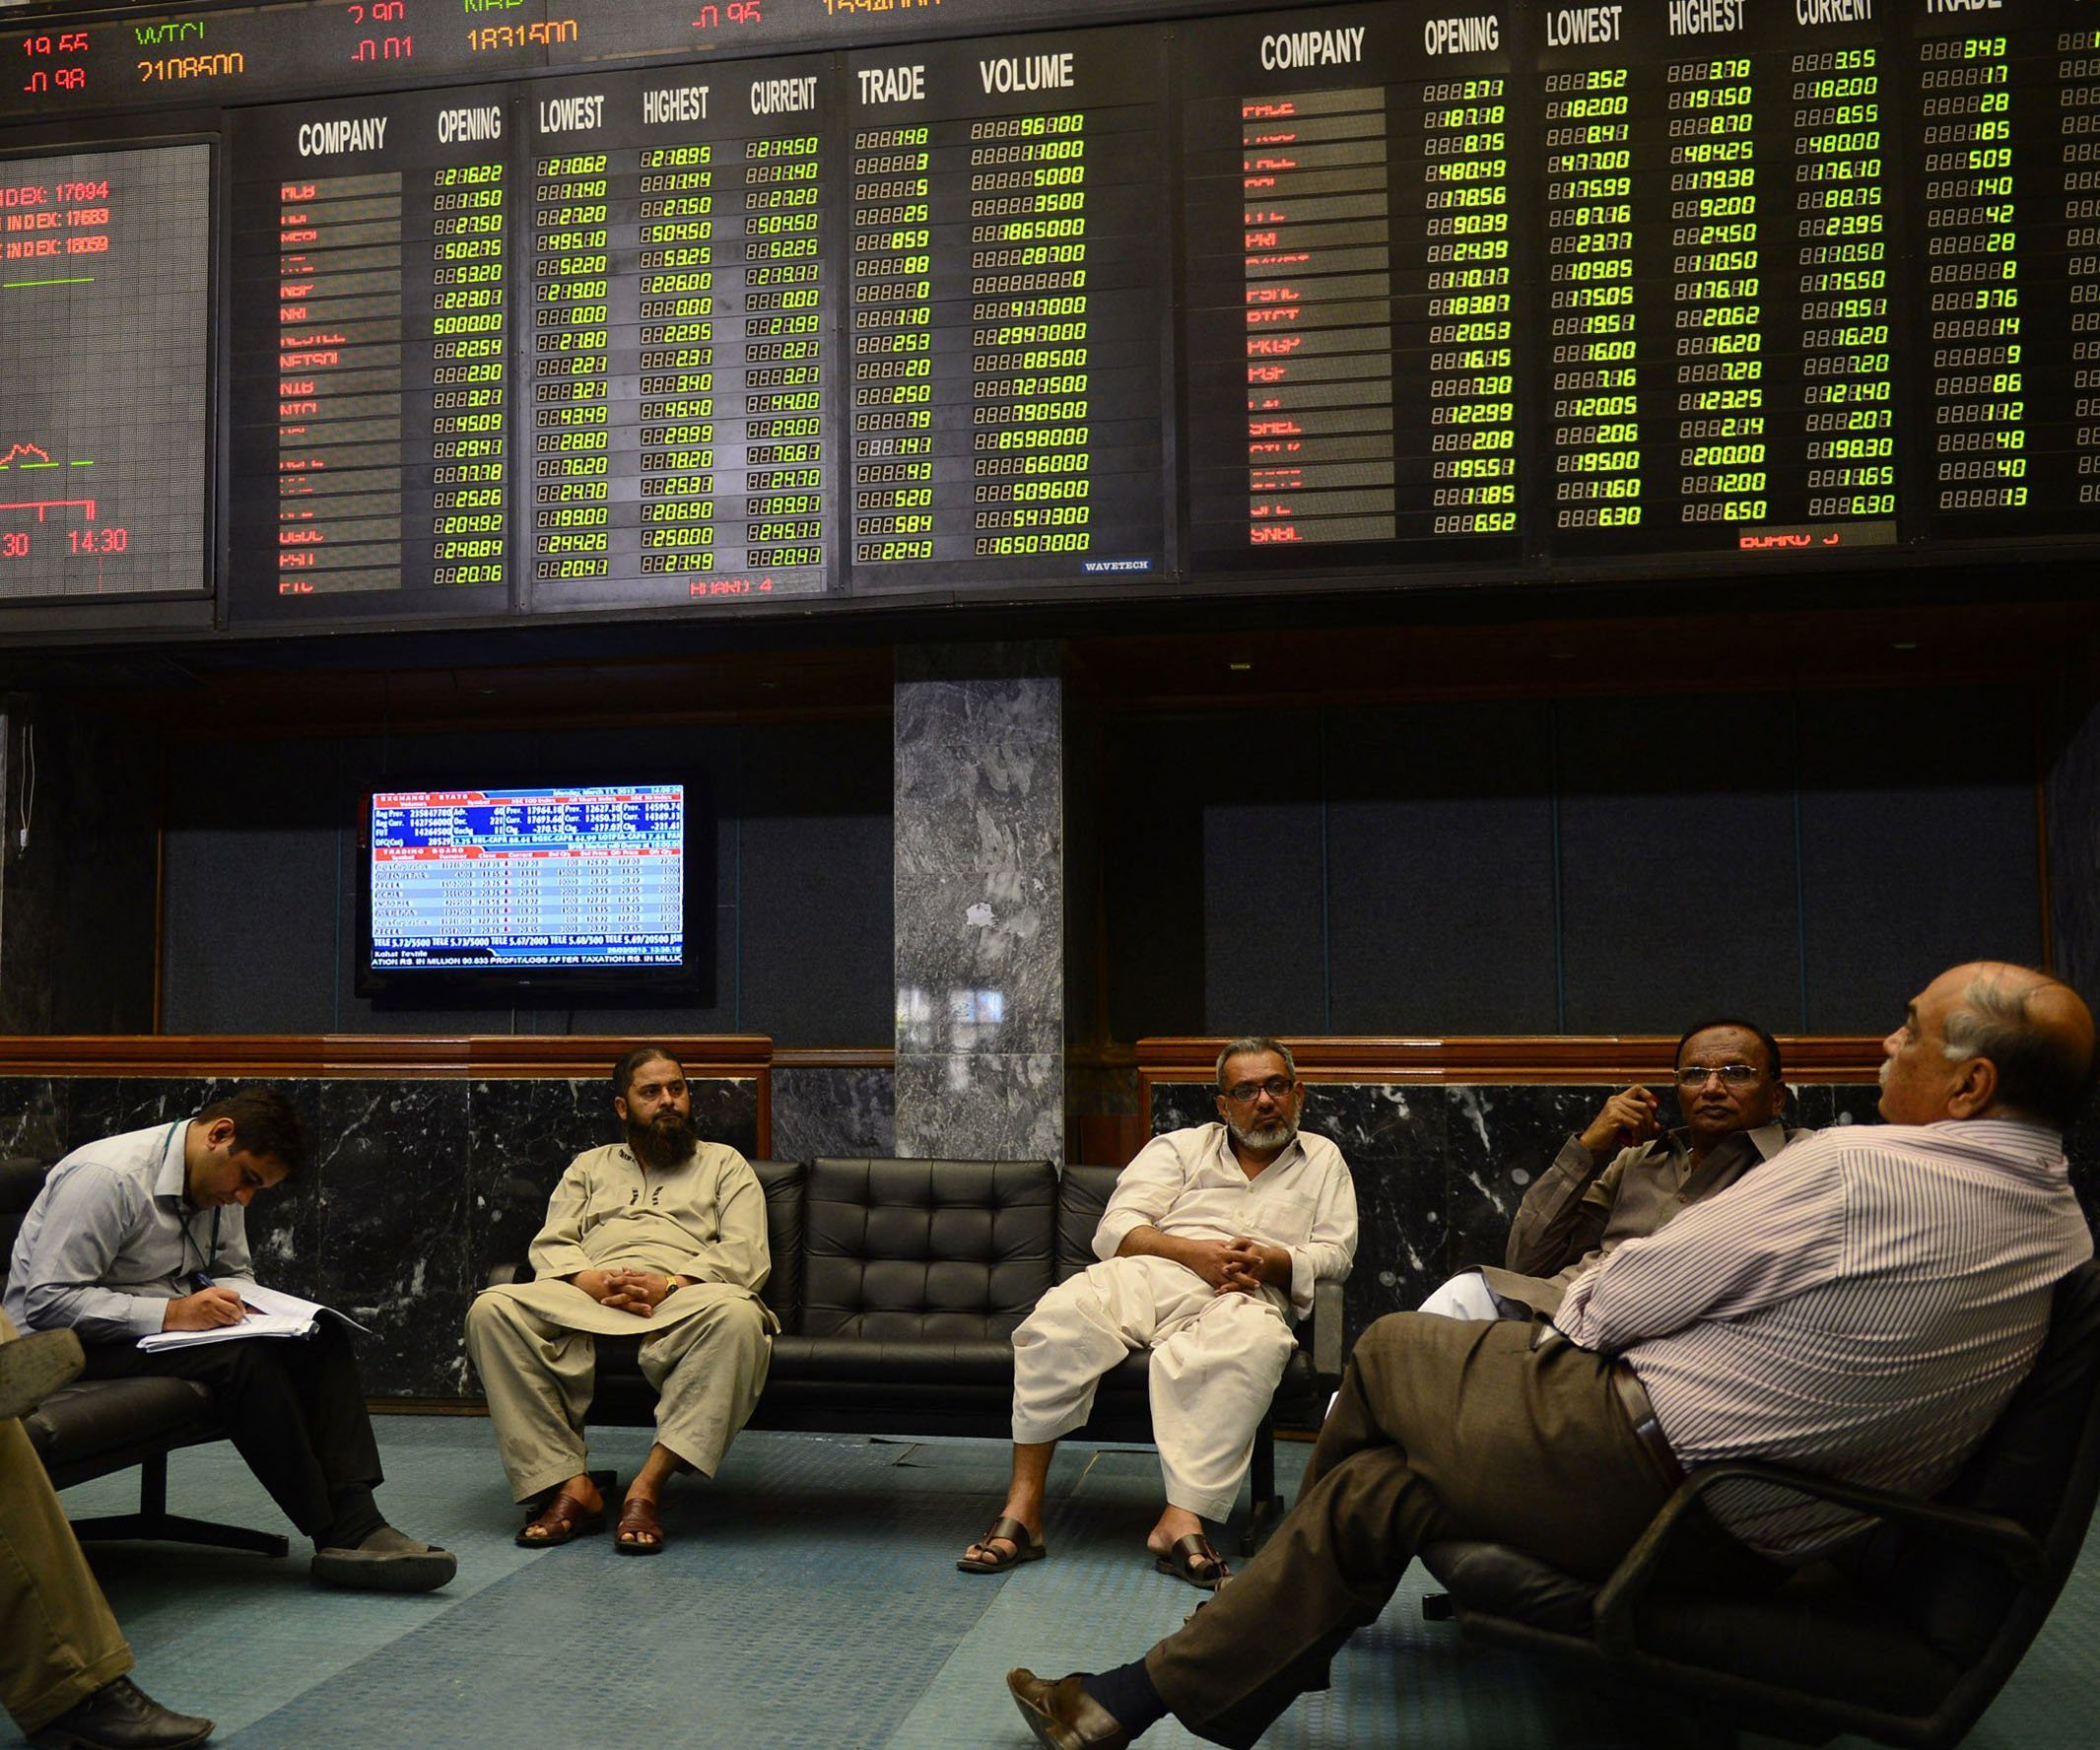 benchmark index decreases 0 08 to settle at 33 870 15 photo afp